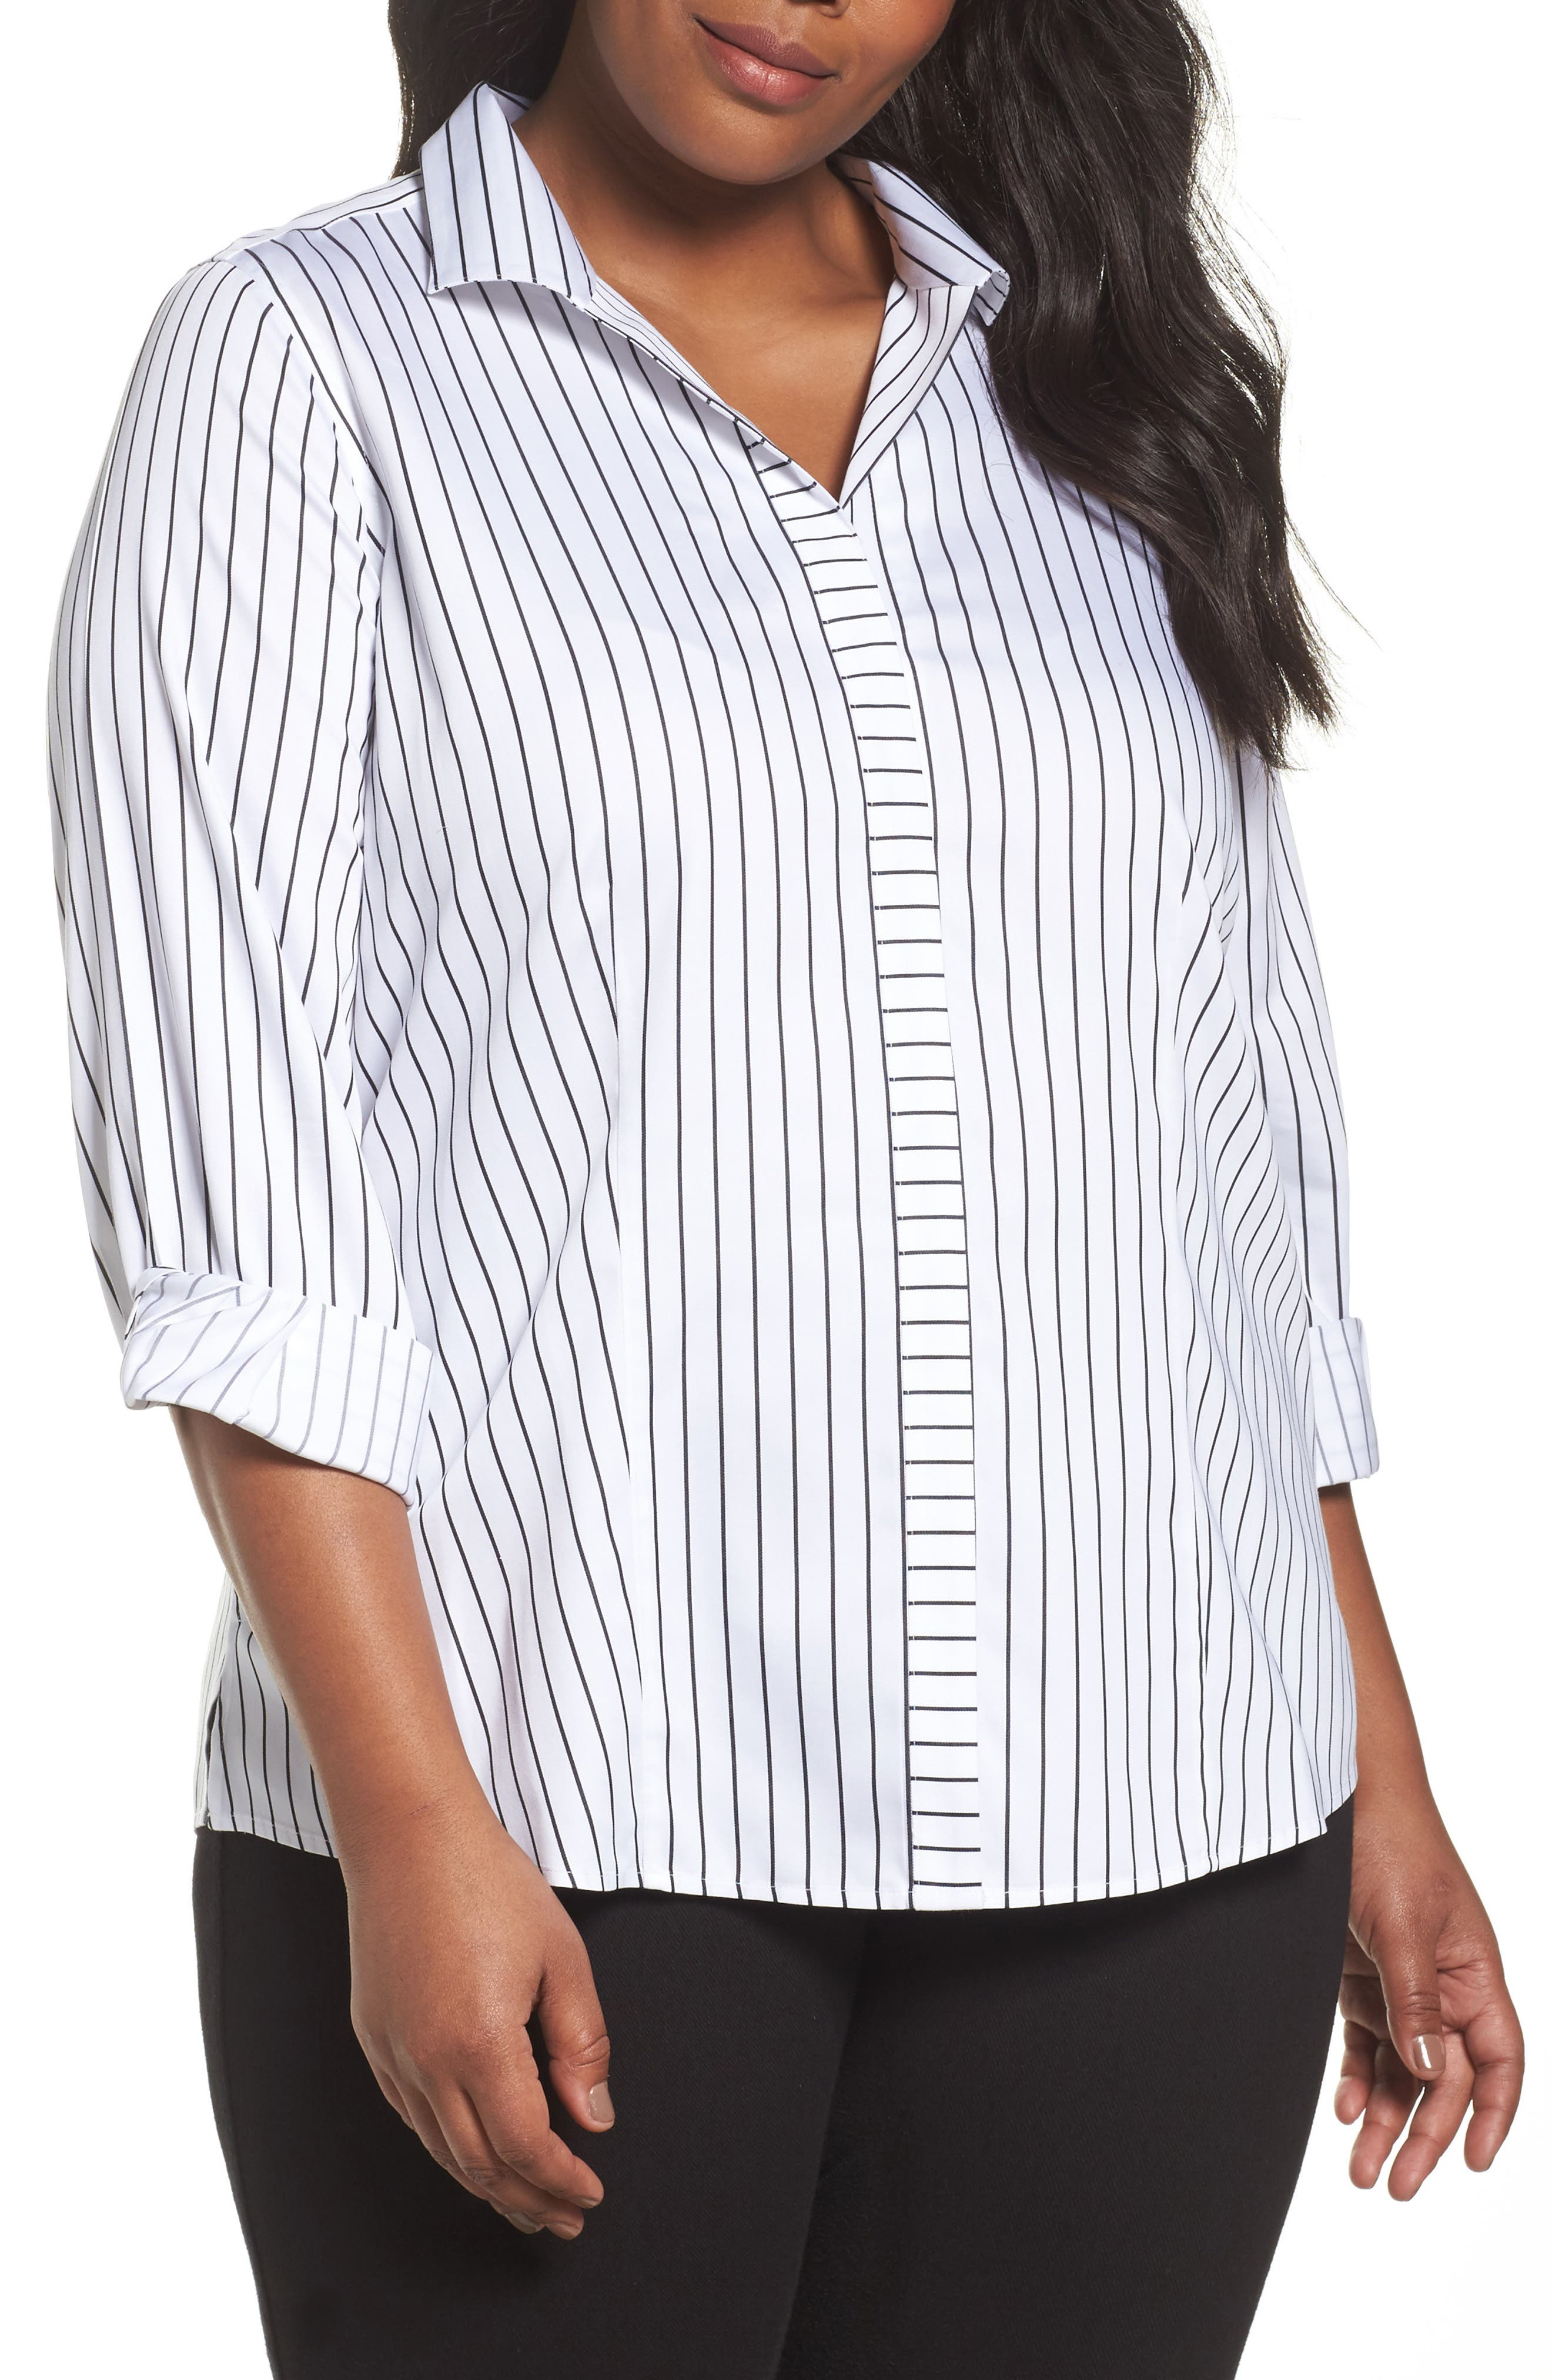 Annie Holiday Stripe Shirt,                         Main,                         color, 100